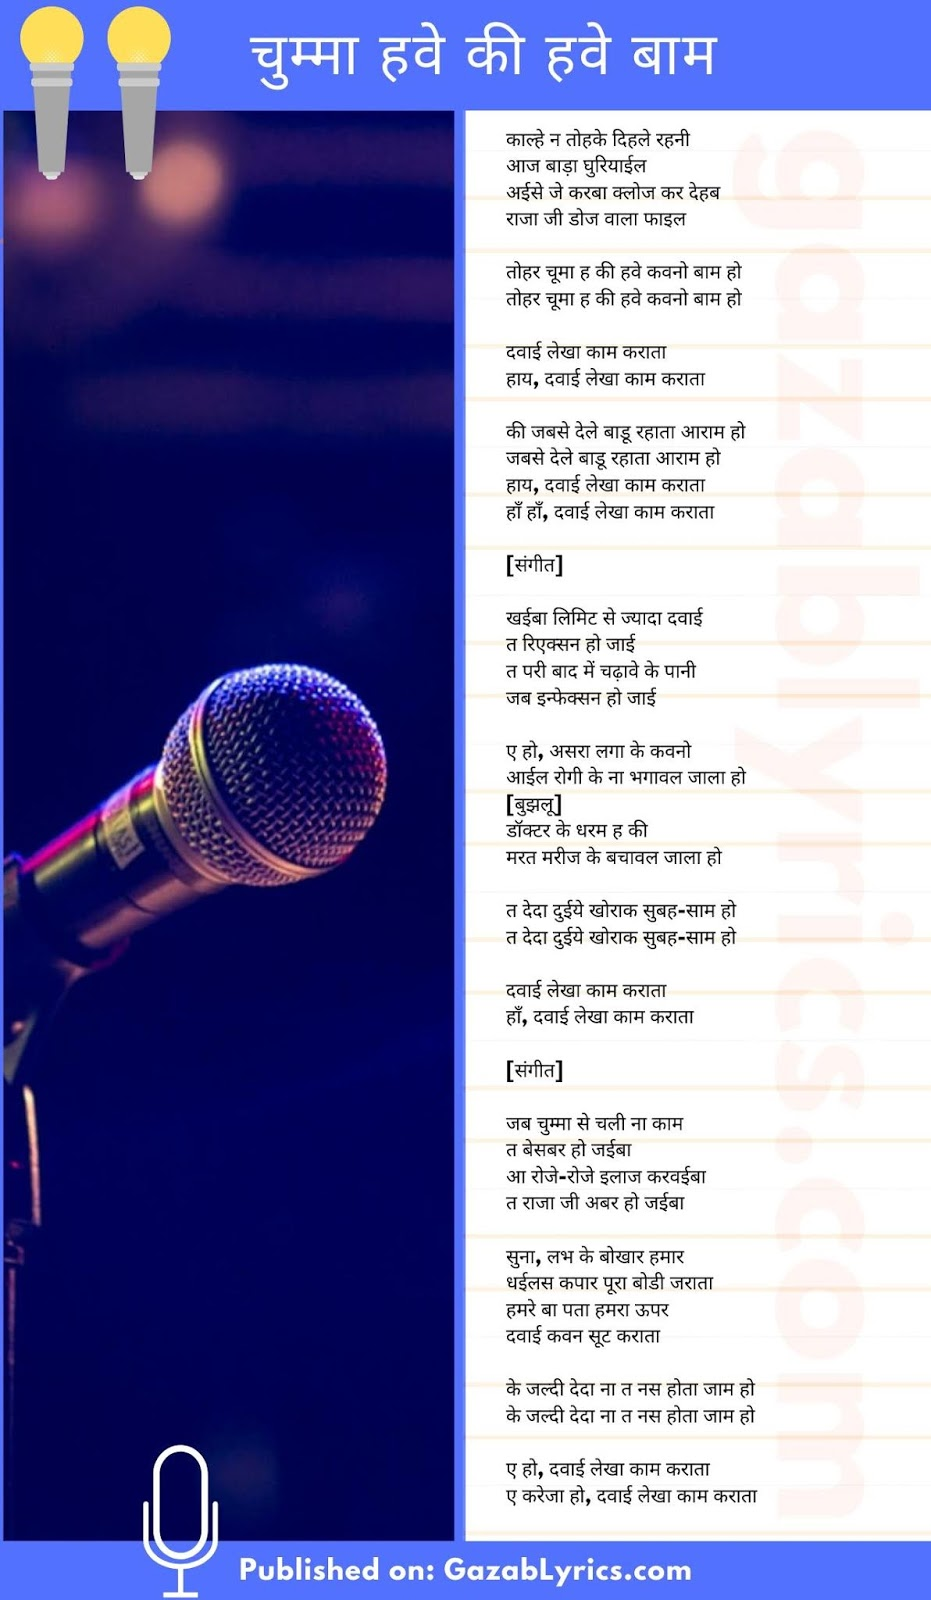 Chumma Have Ki Have Baam song lyrics image